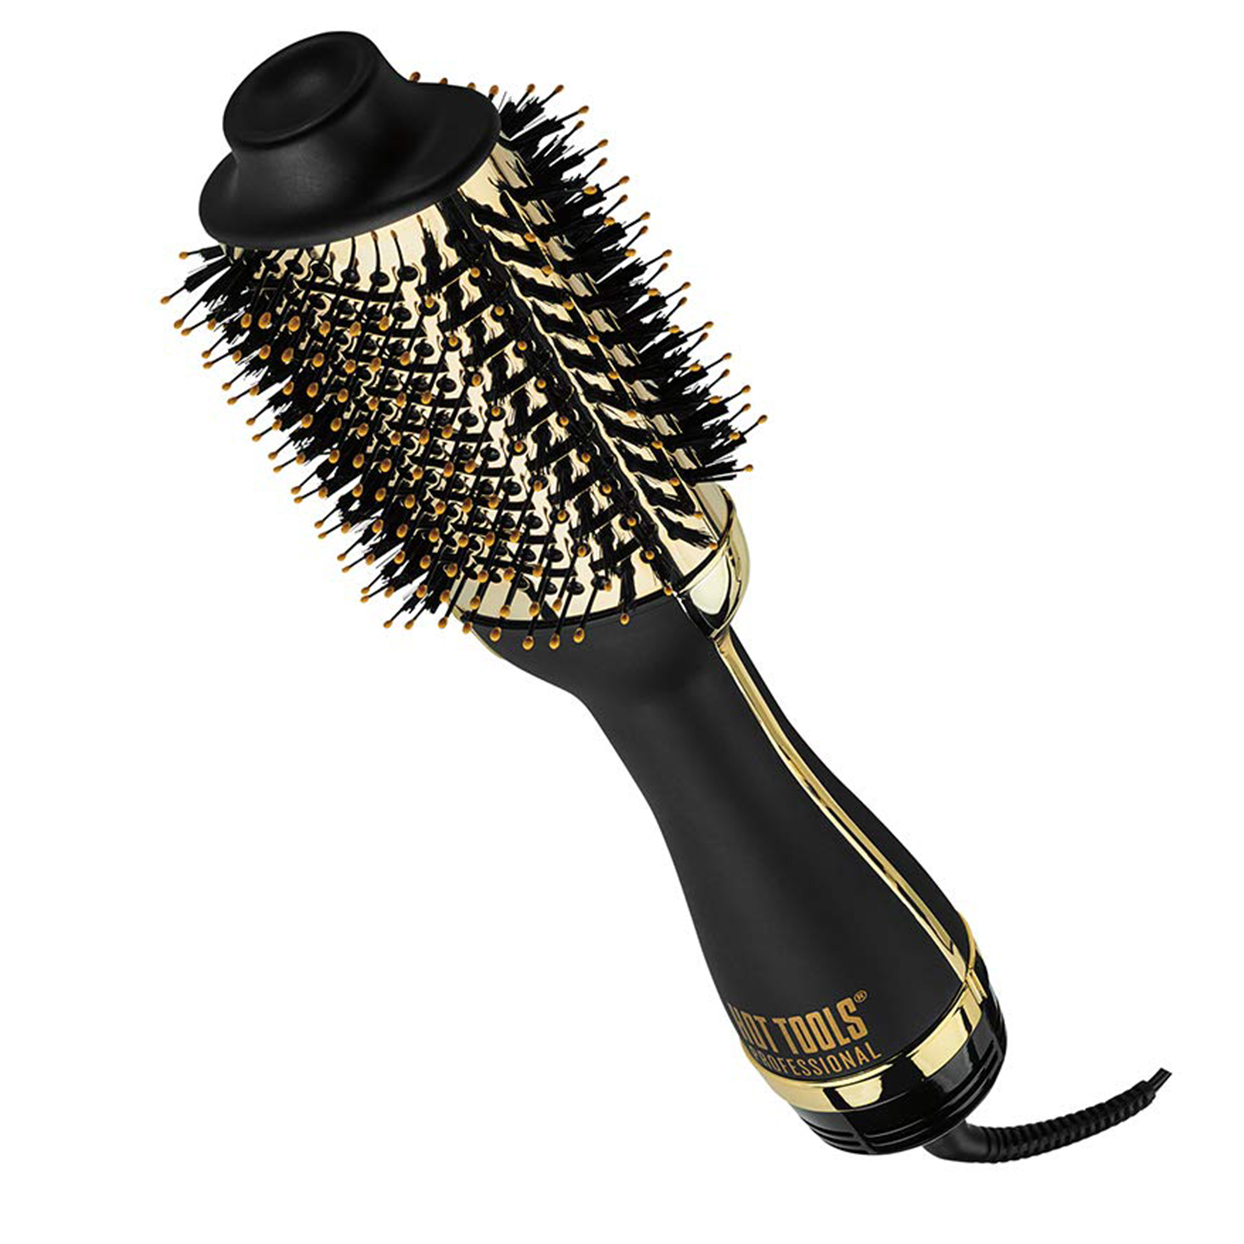 Hot Tools Charcoal-Infused One-Step Hot Brush